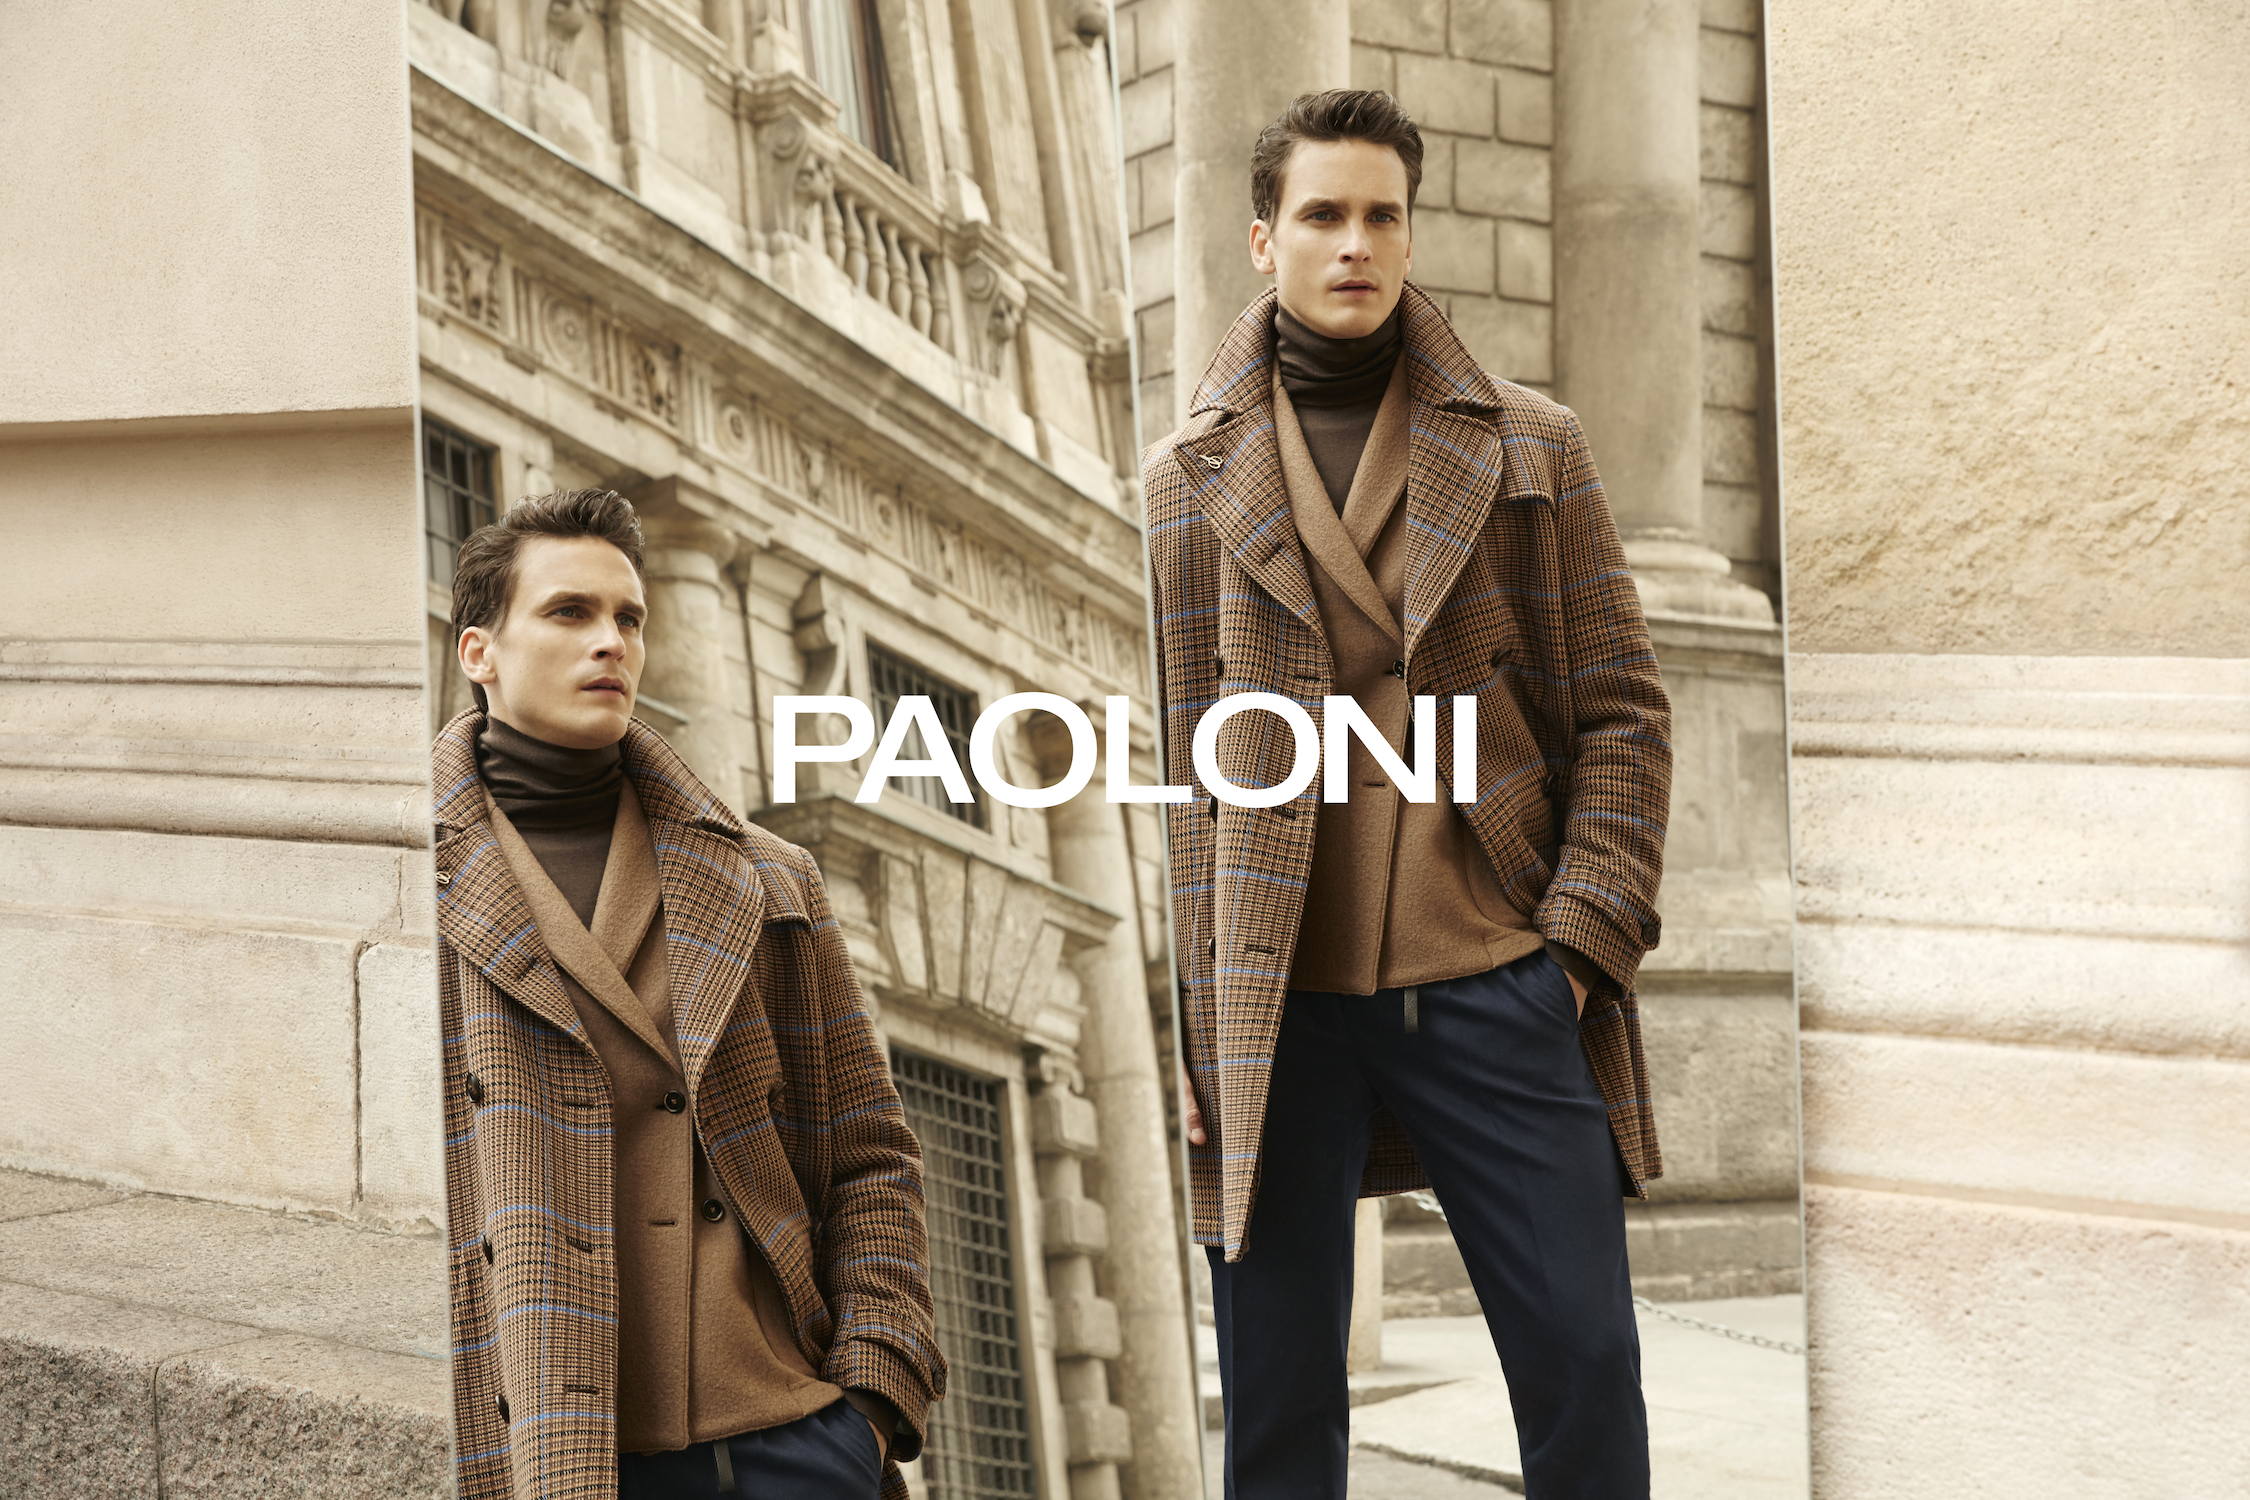 Paoloni ADV 4 0794.png